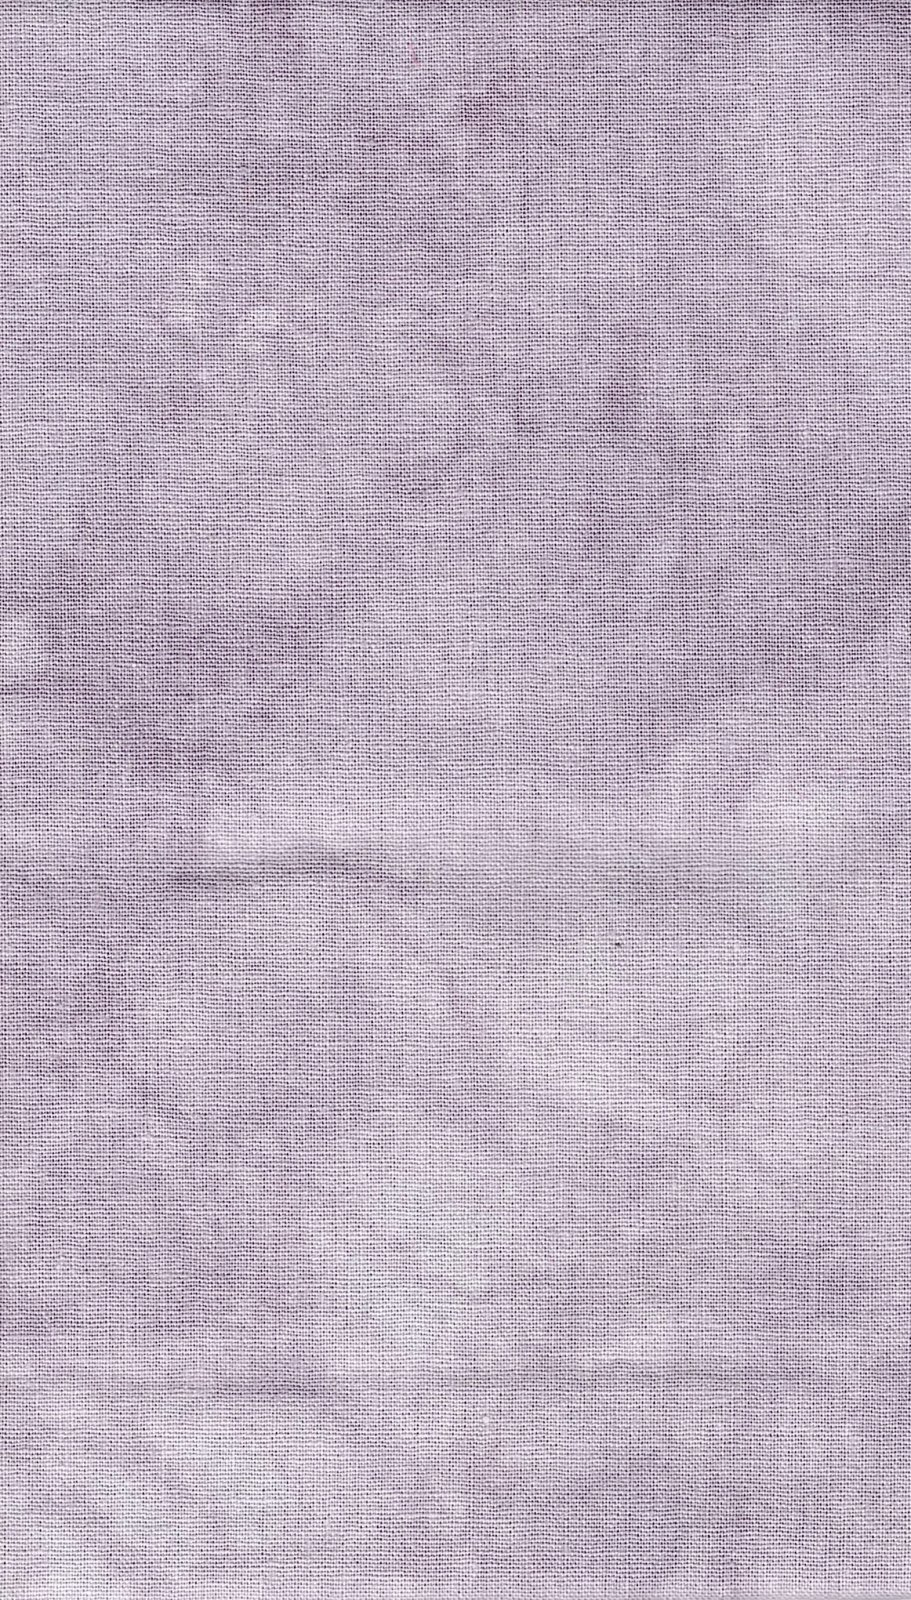 Heather Hand-Dyed Linen